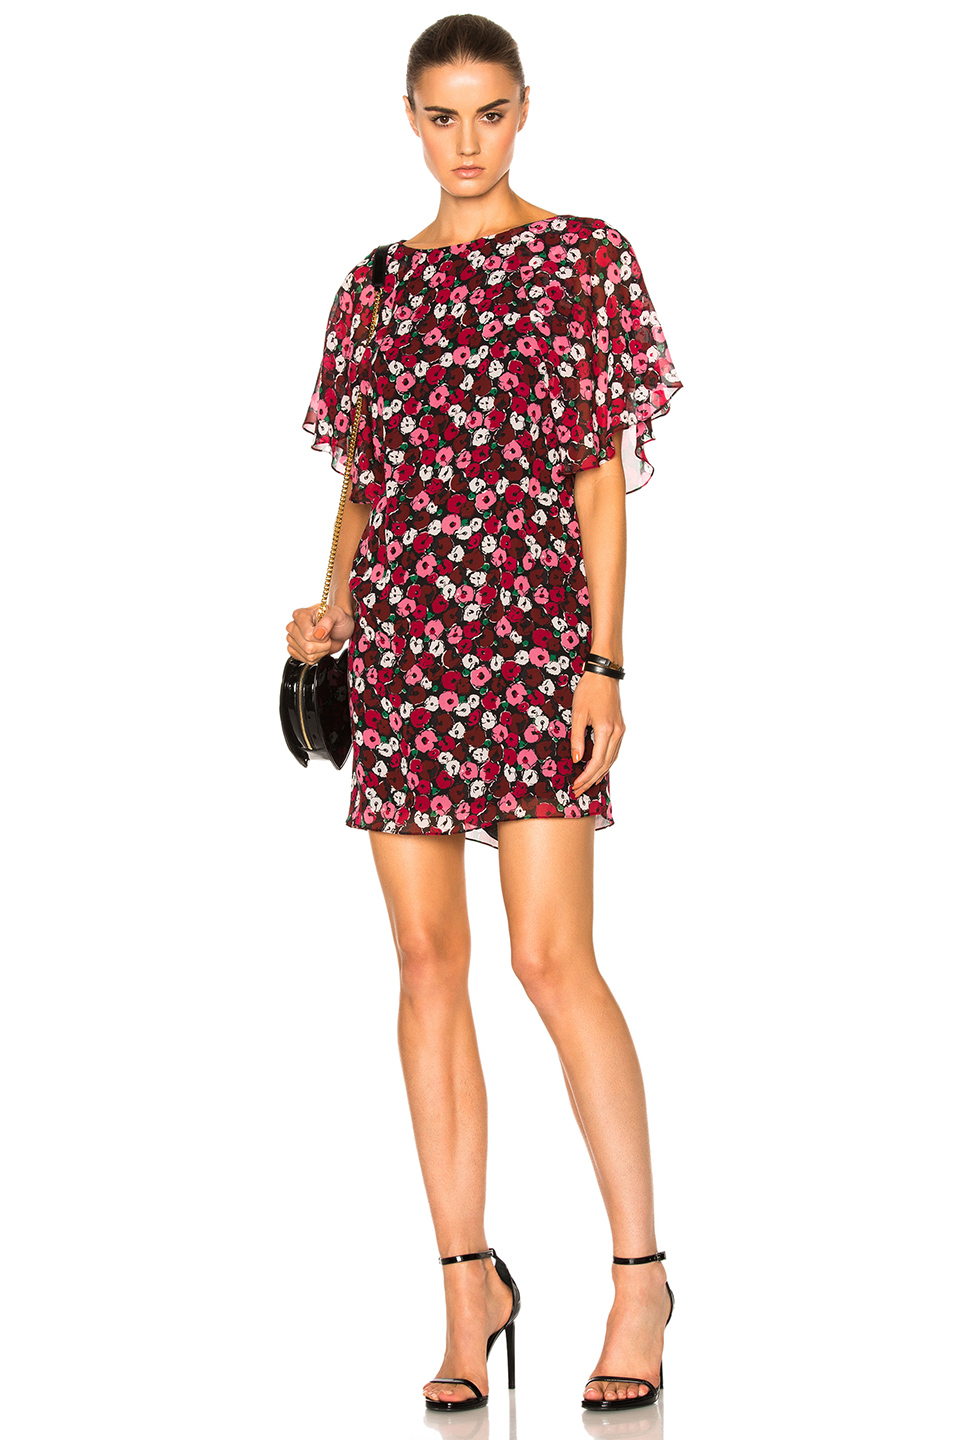 Saint Laurent Georgette Dress in Red,Floral